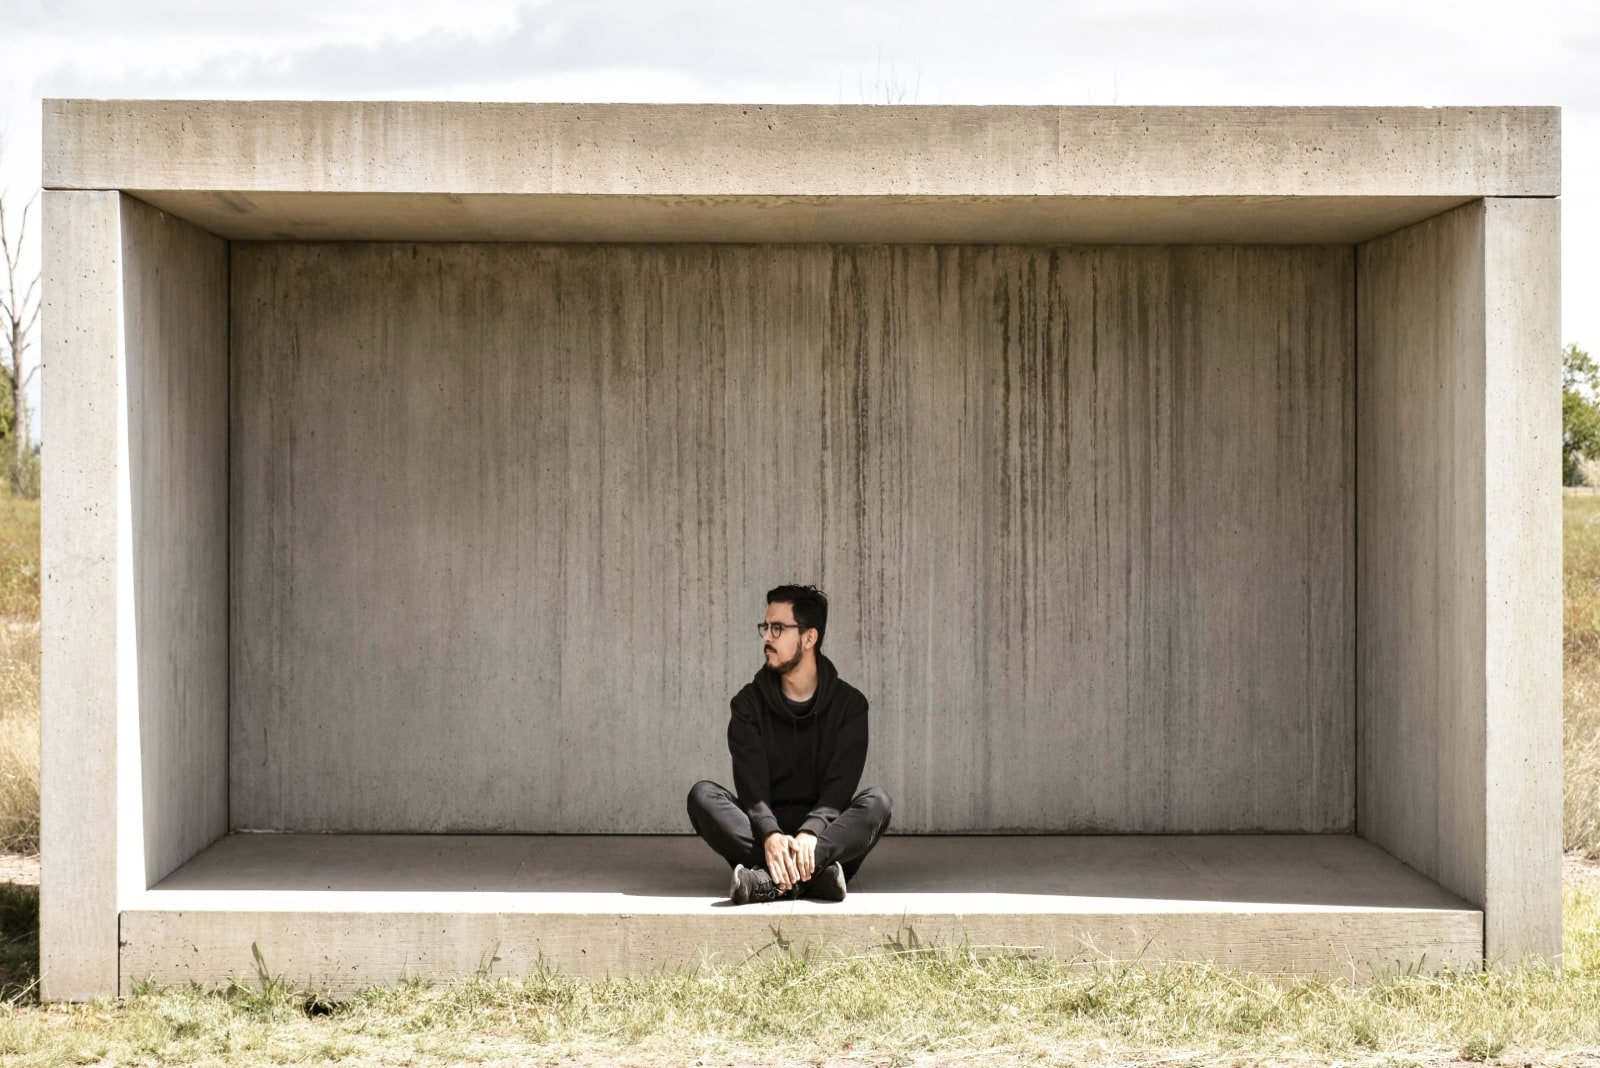 man in black hoodie sitting on concrete surface